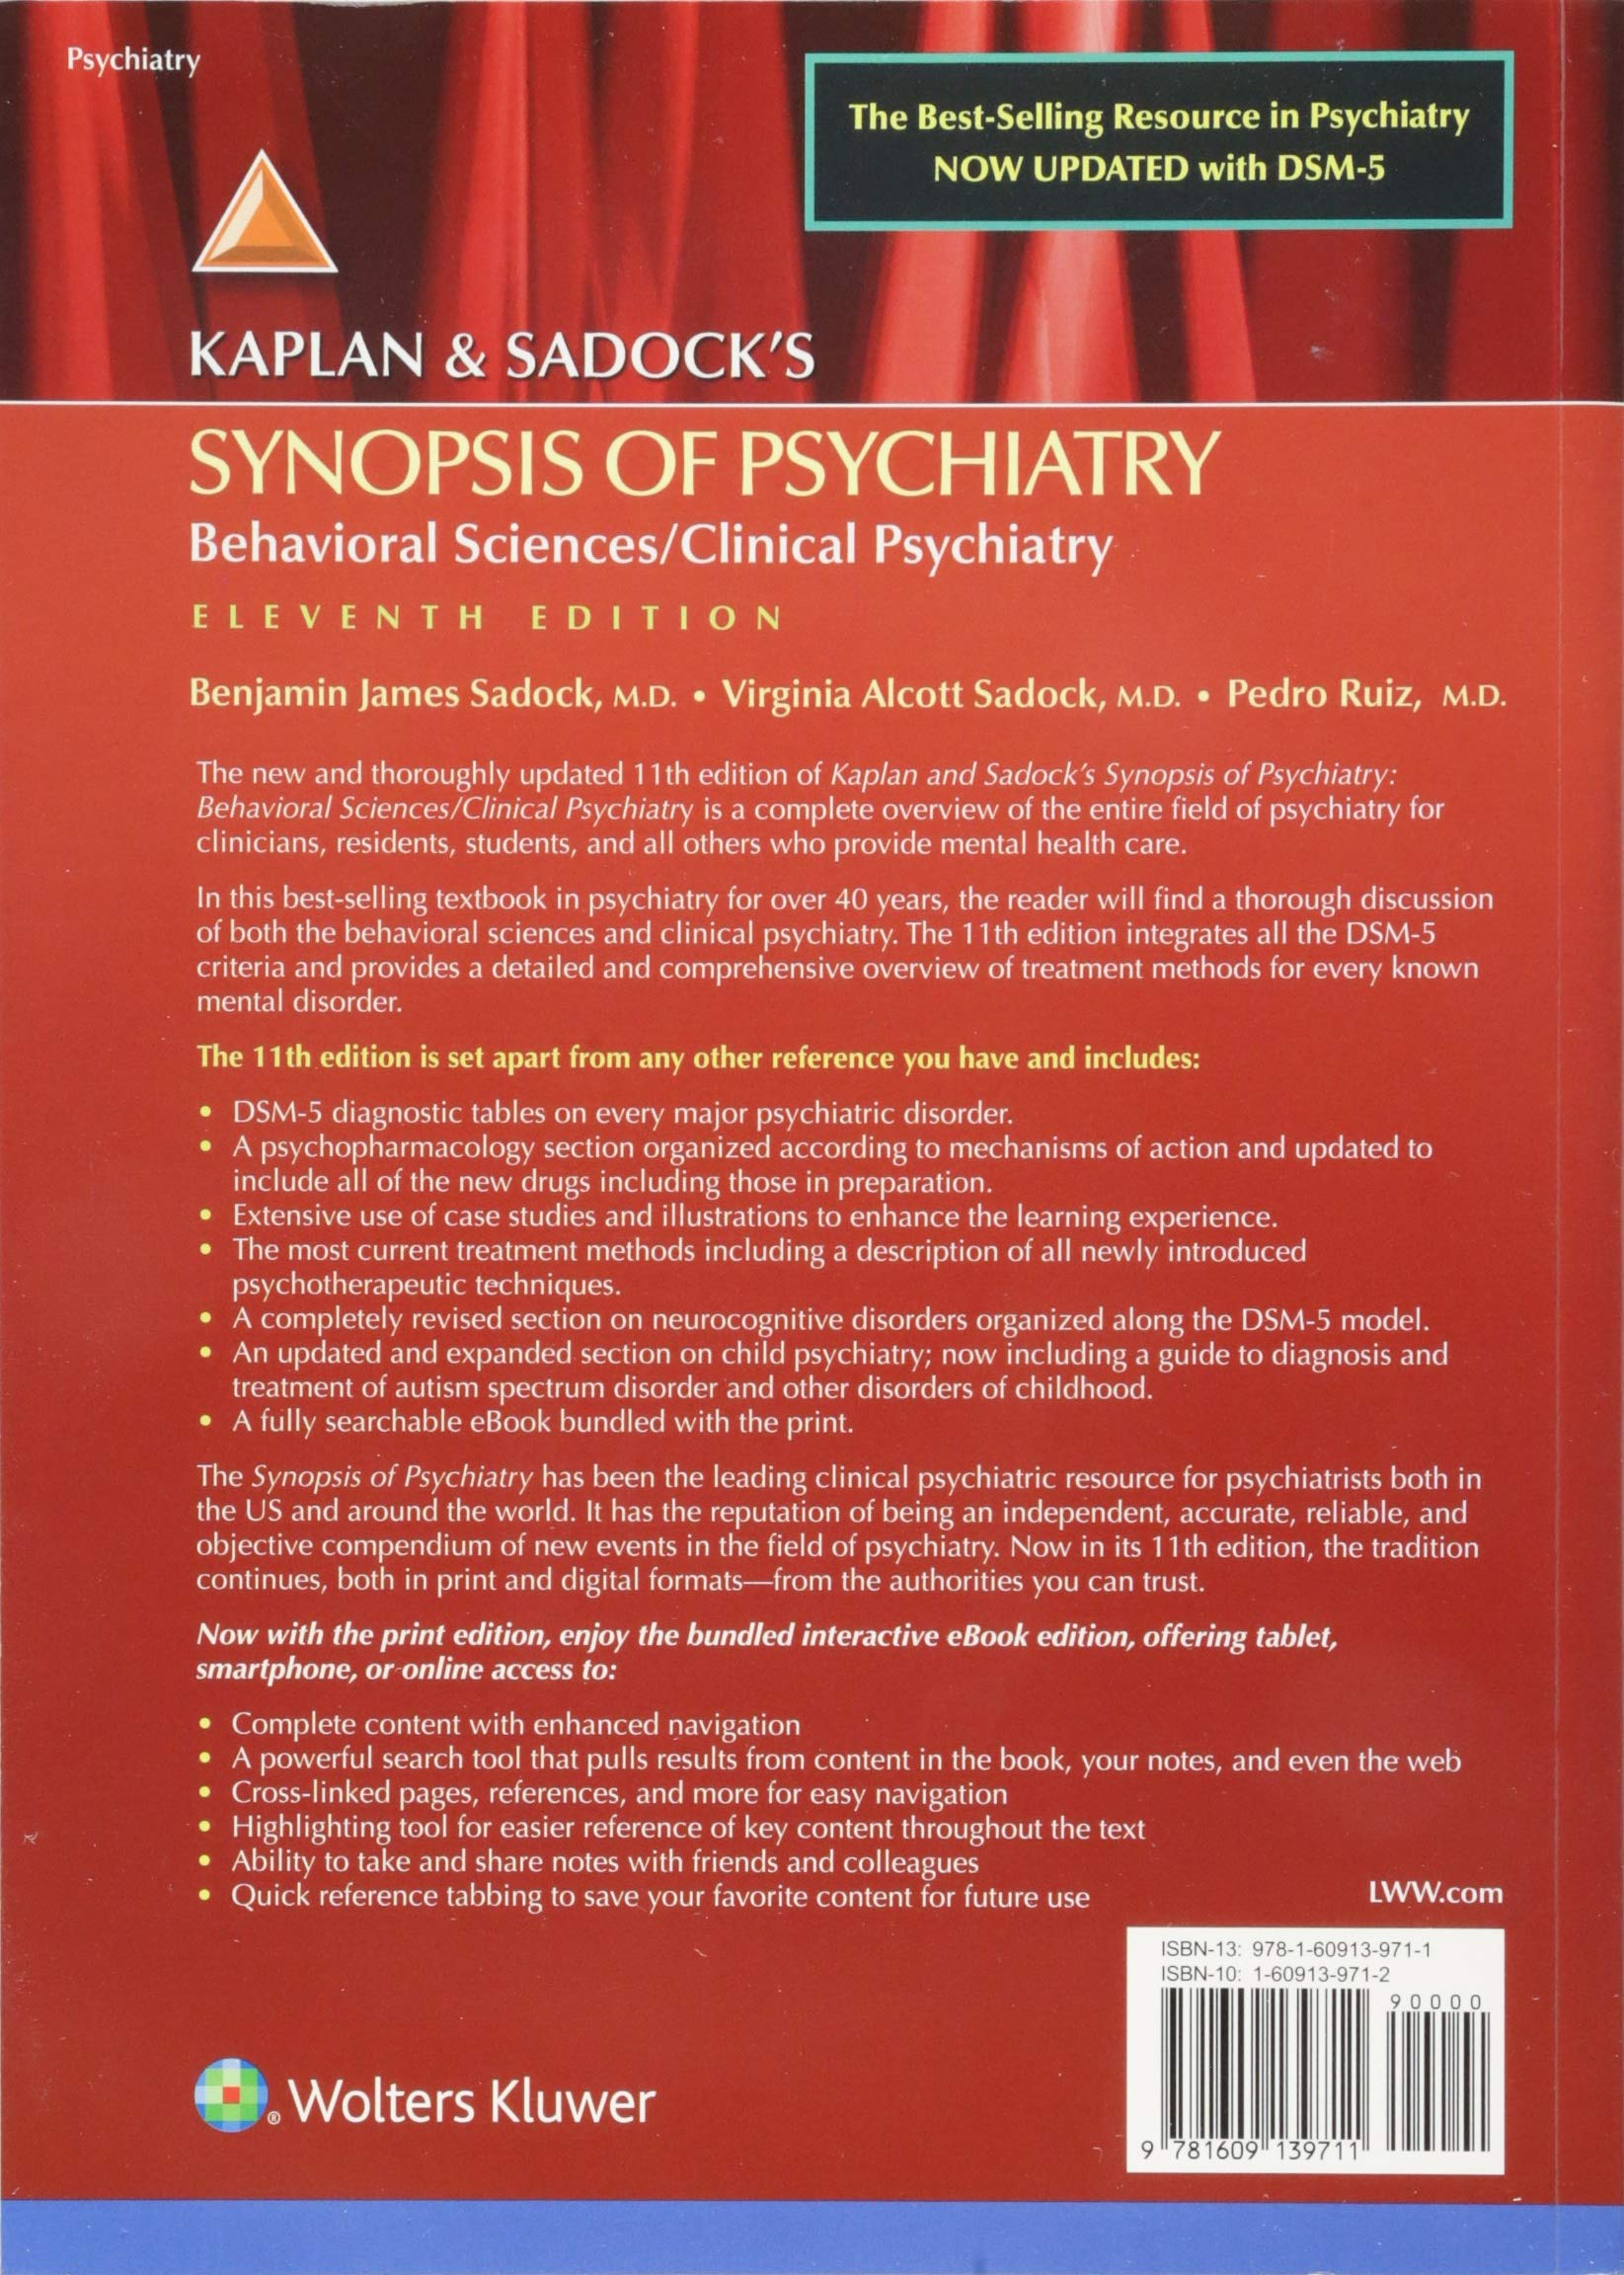 Kaplan And Sadocks Synopsis Of Psychiatry 11th Edition Pdf